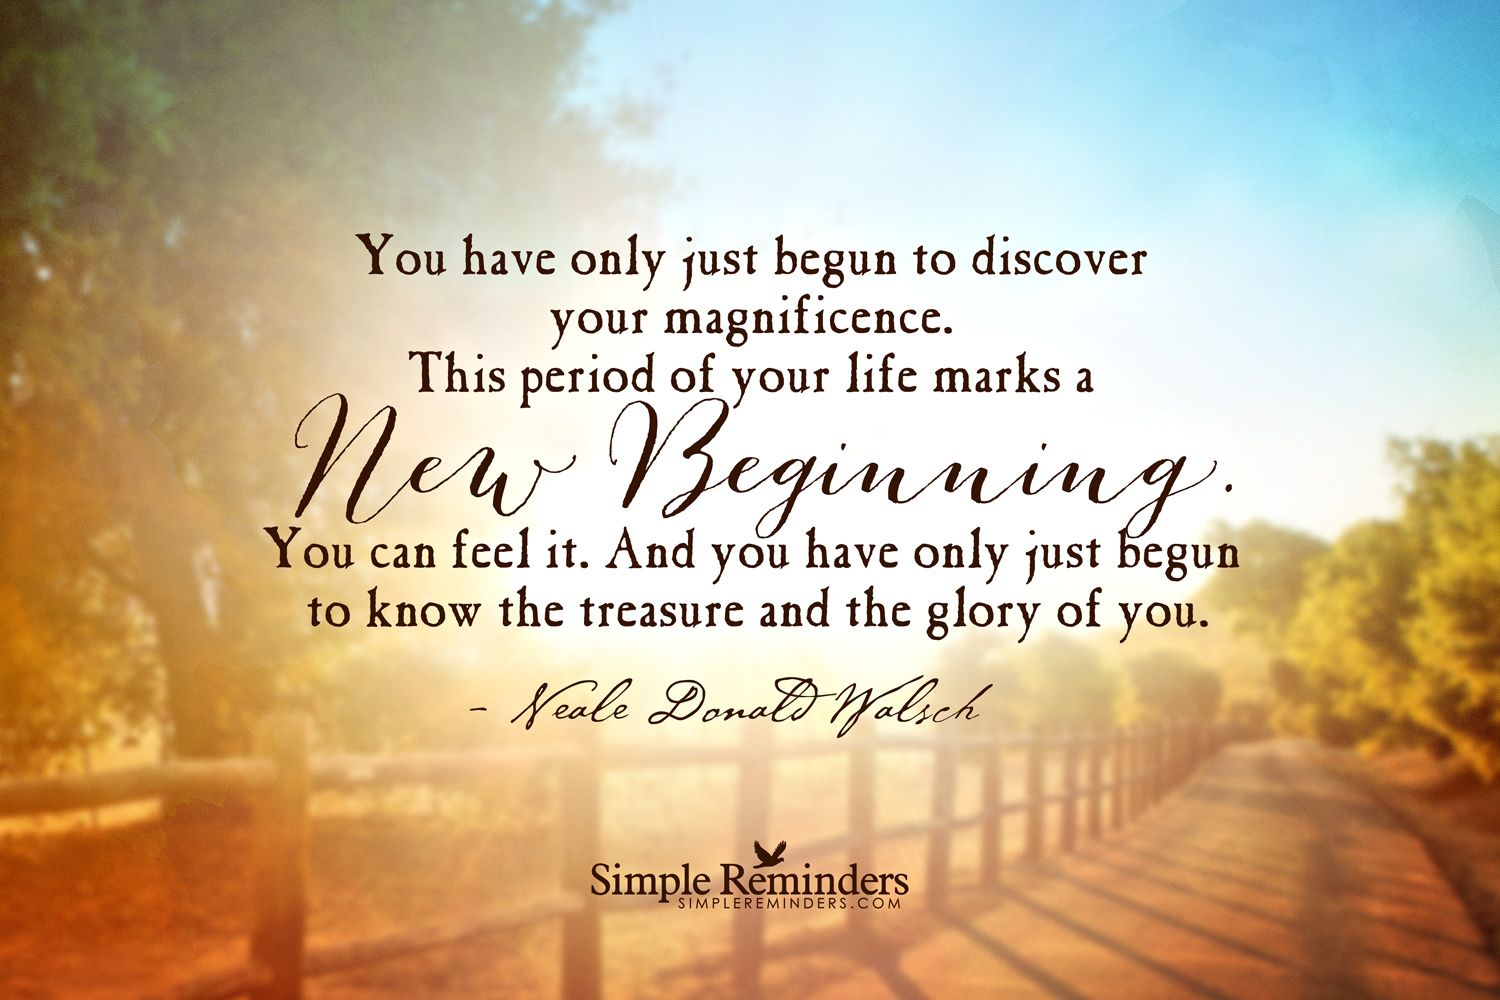 You have only just begun to discover your magnificence